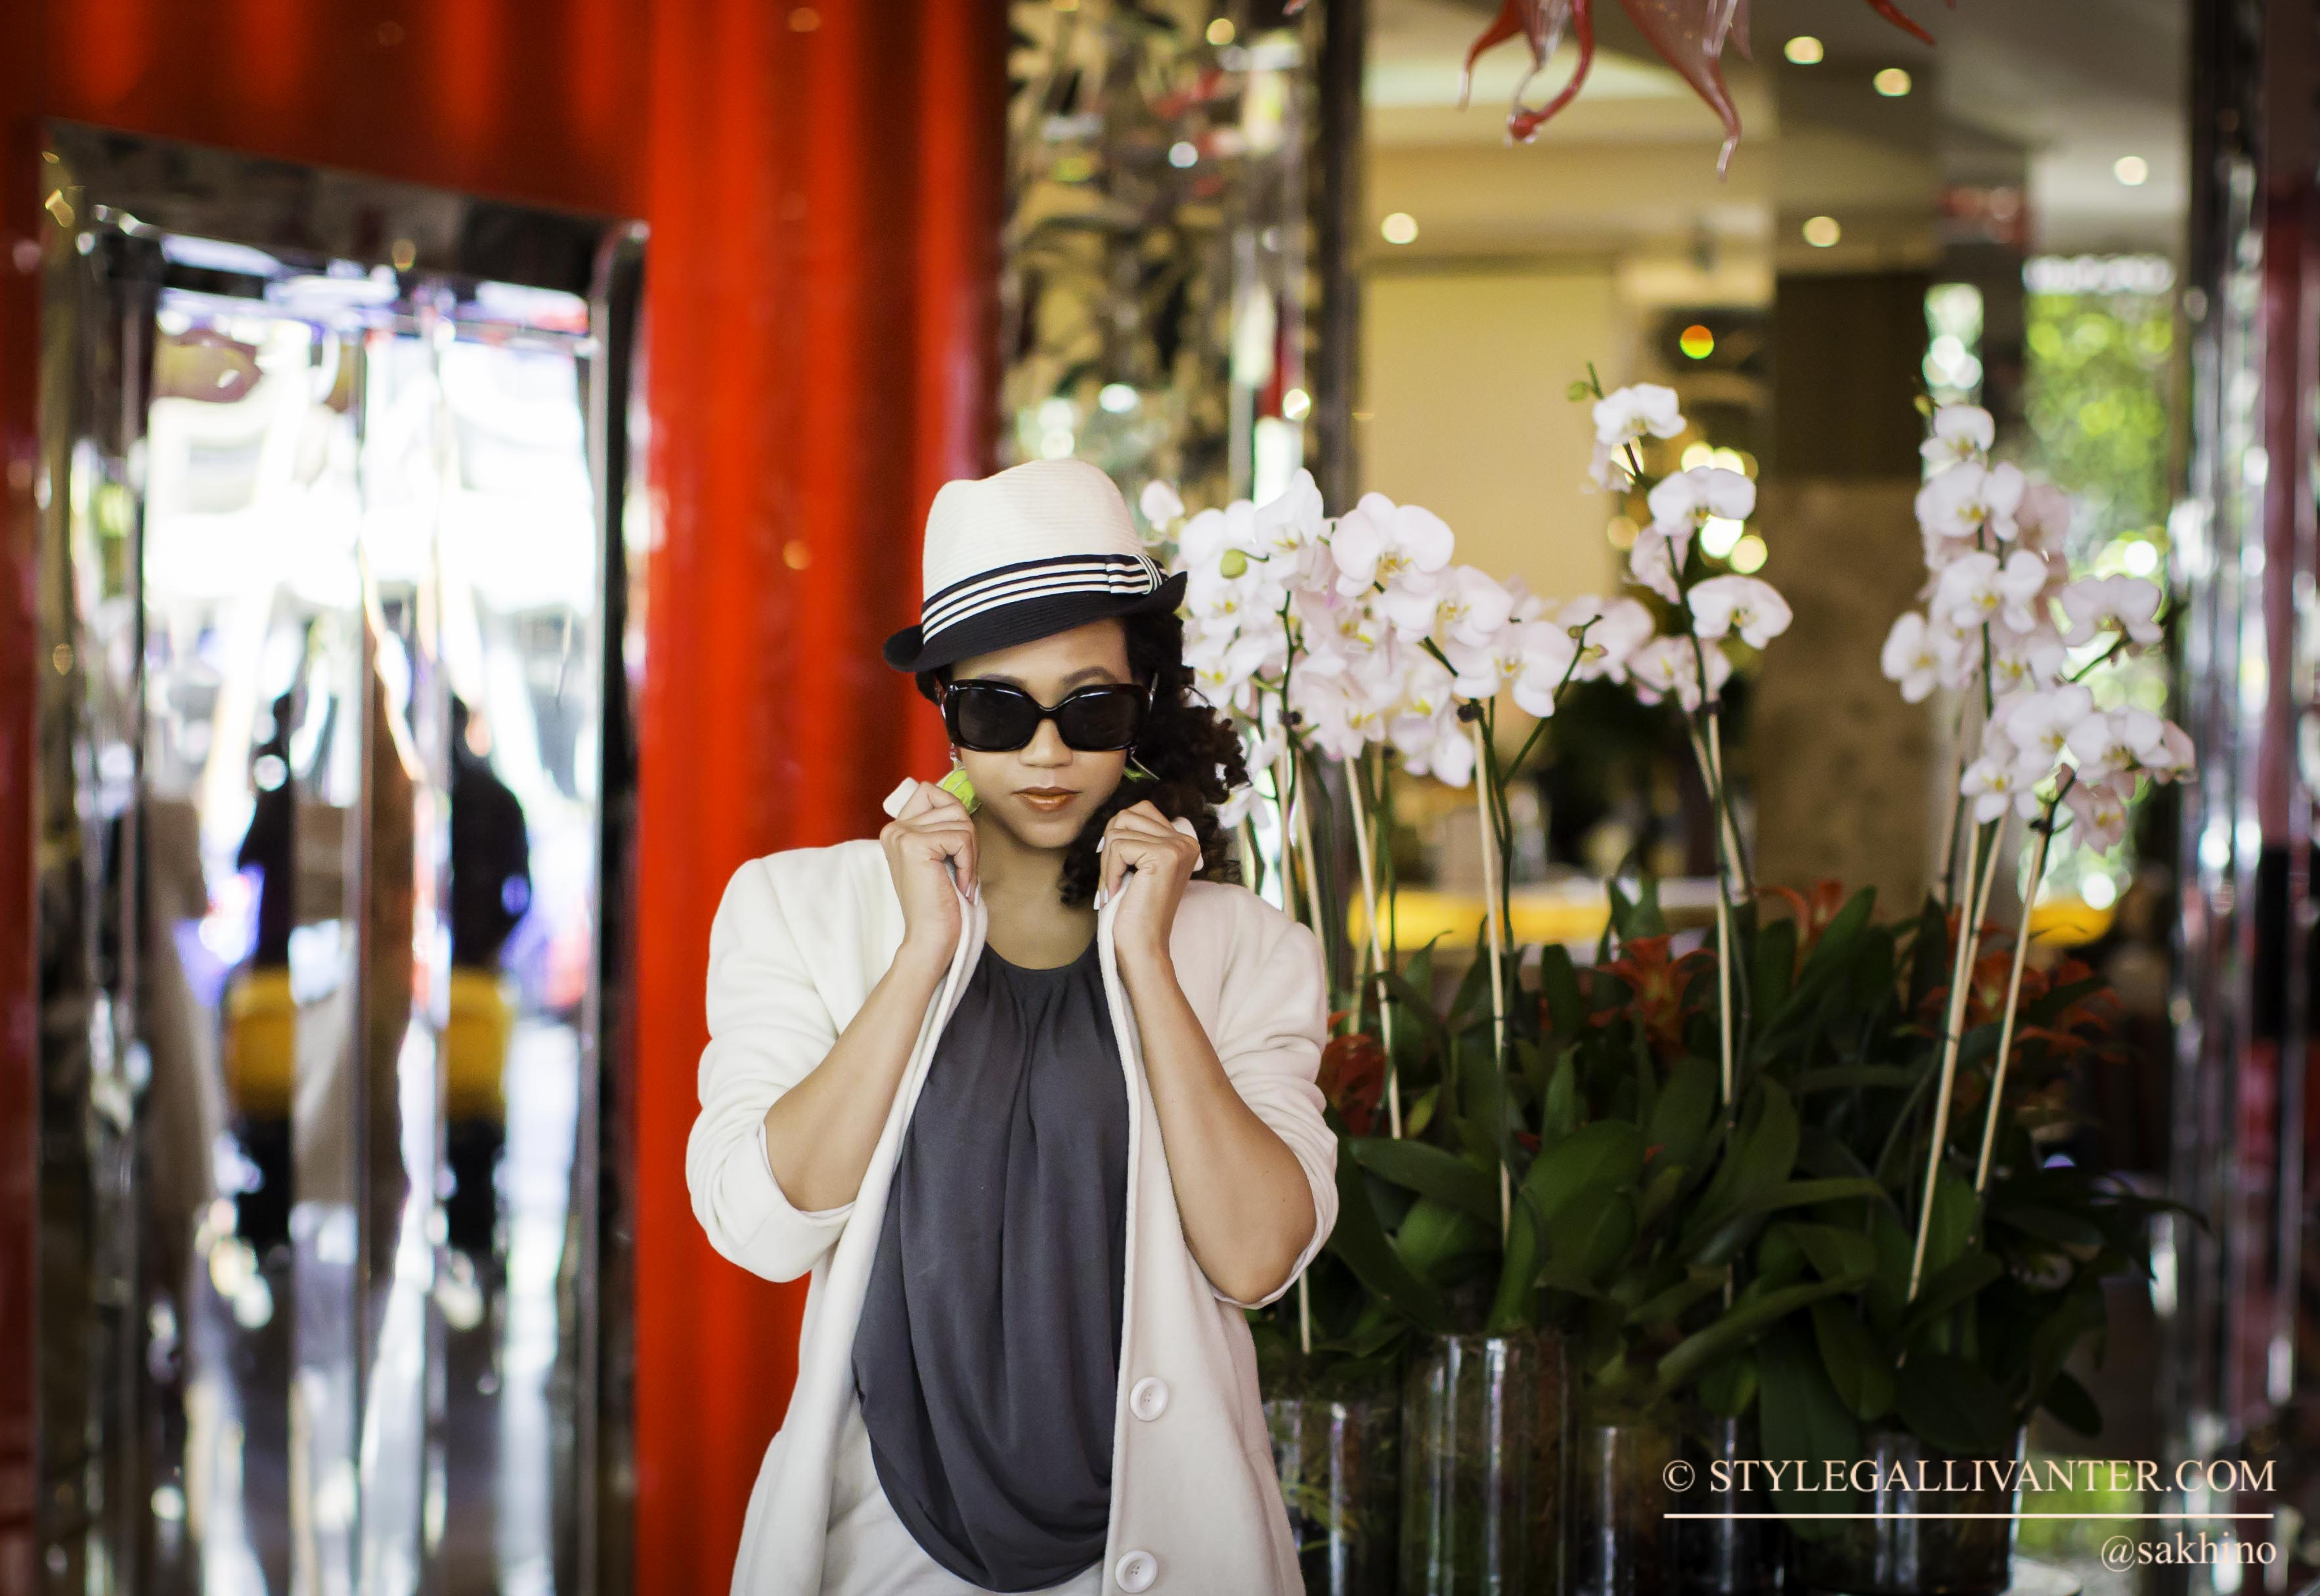 tp-mummy-bloggers-melbourne-australia_stylish-mummy-bloggers-2015_trilby_Miranda-StyleGallivanter.com_Photo-Credit-Andrew-Kibuka_copyright-2015-6